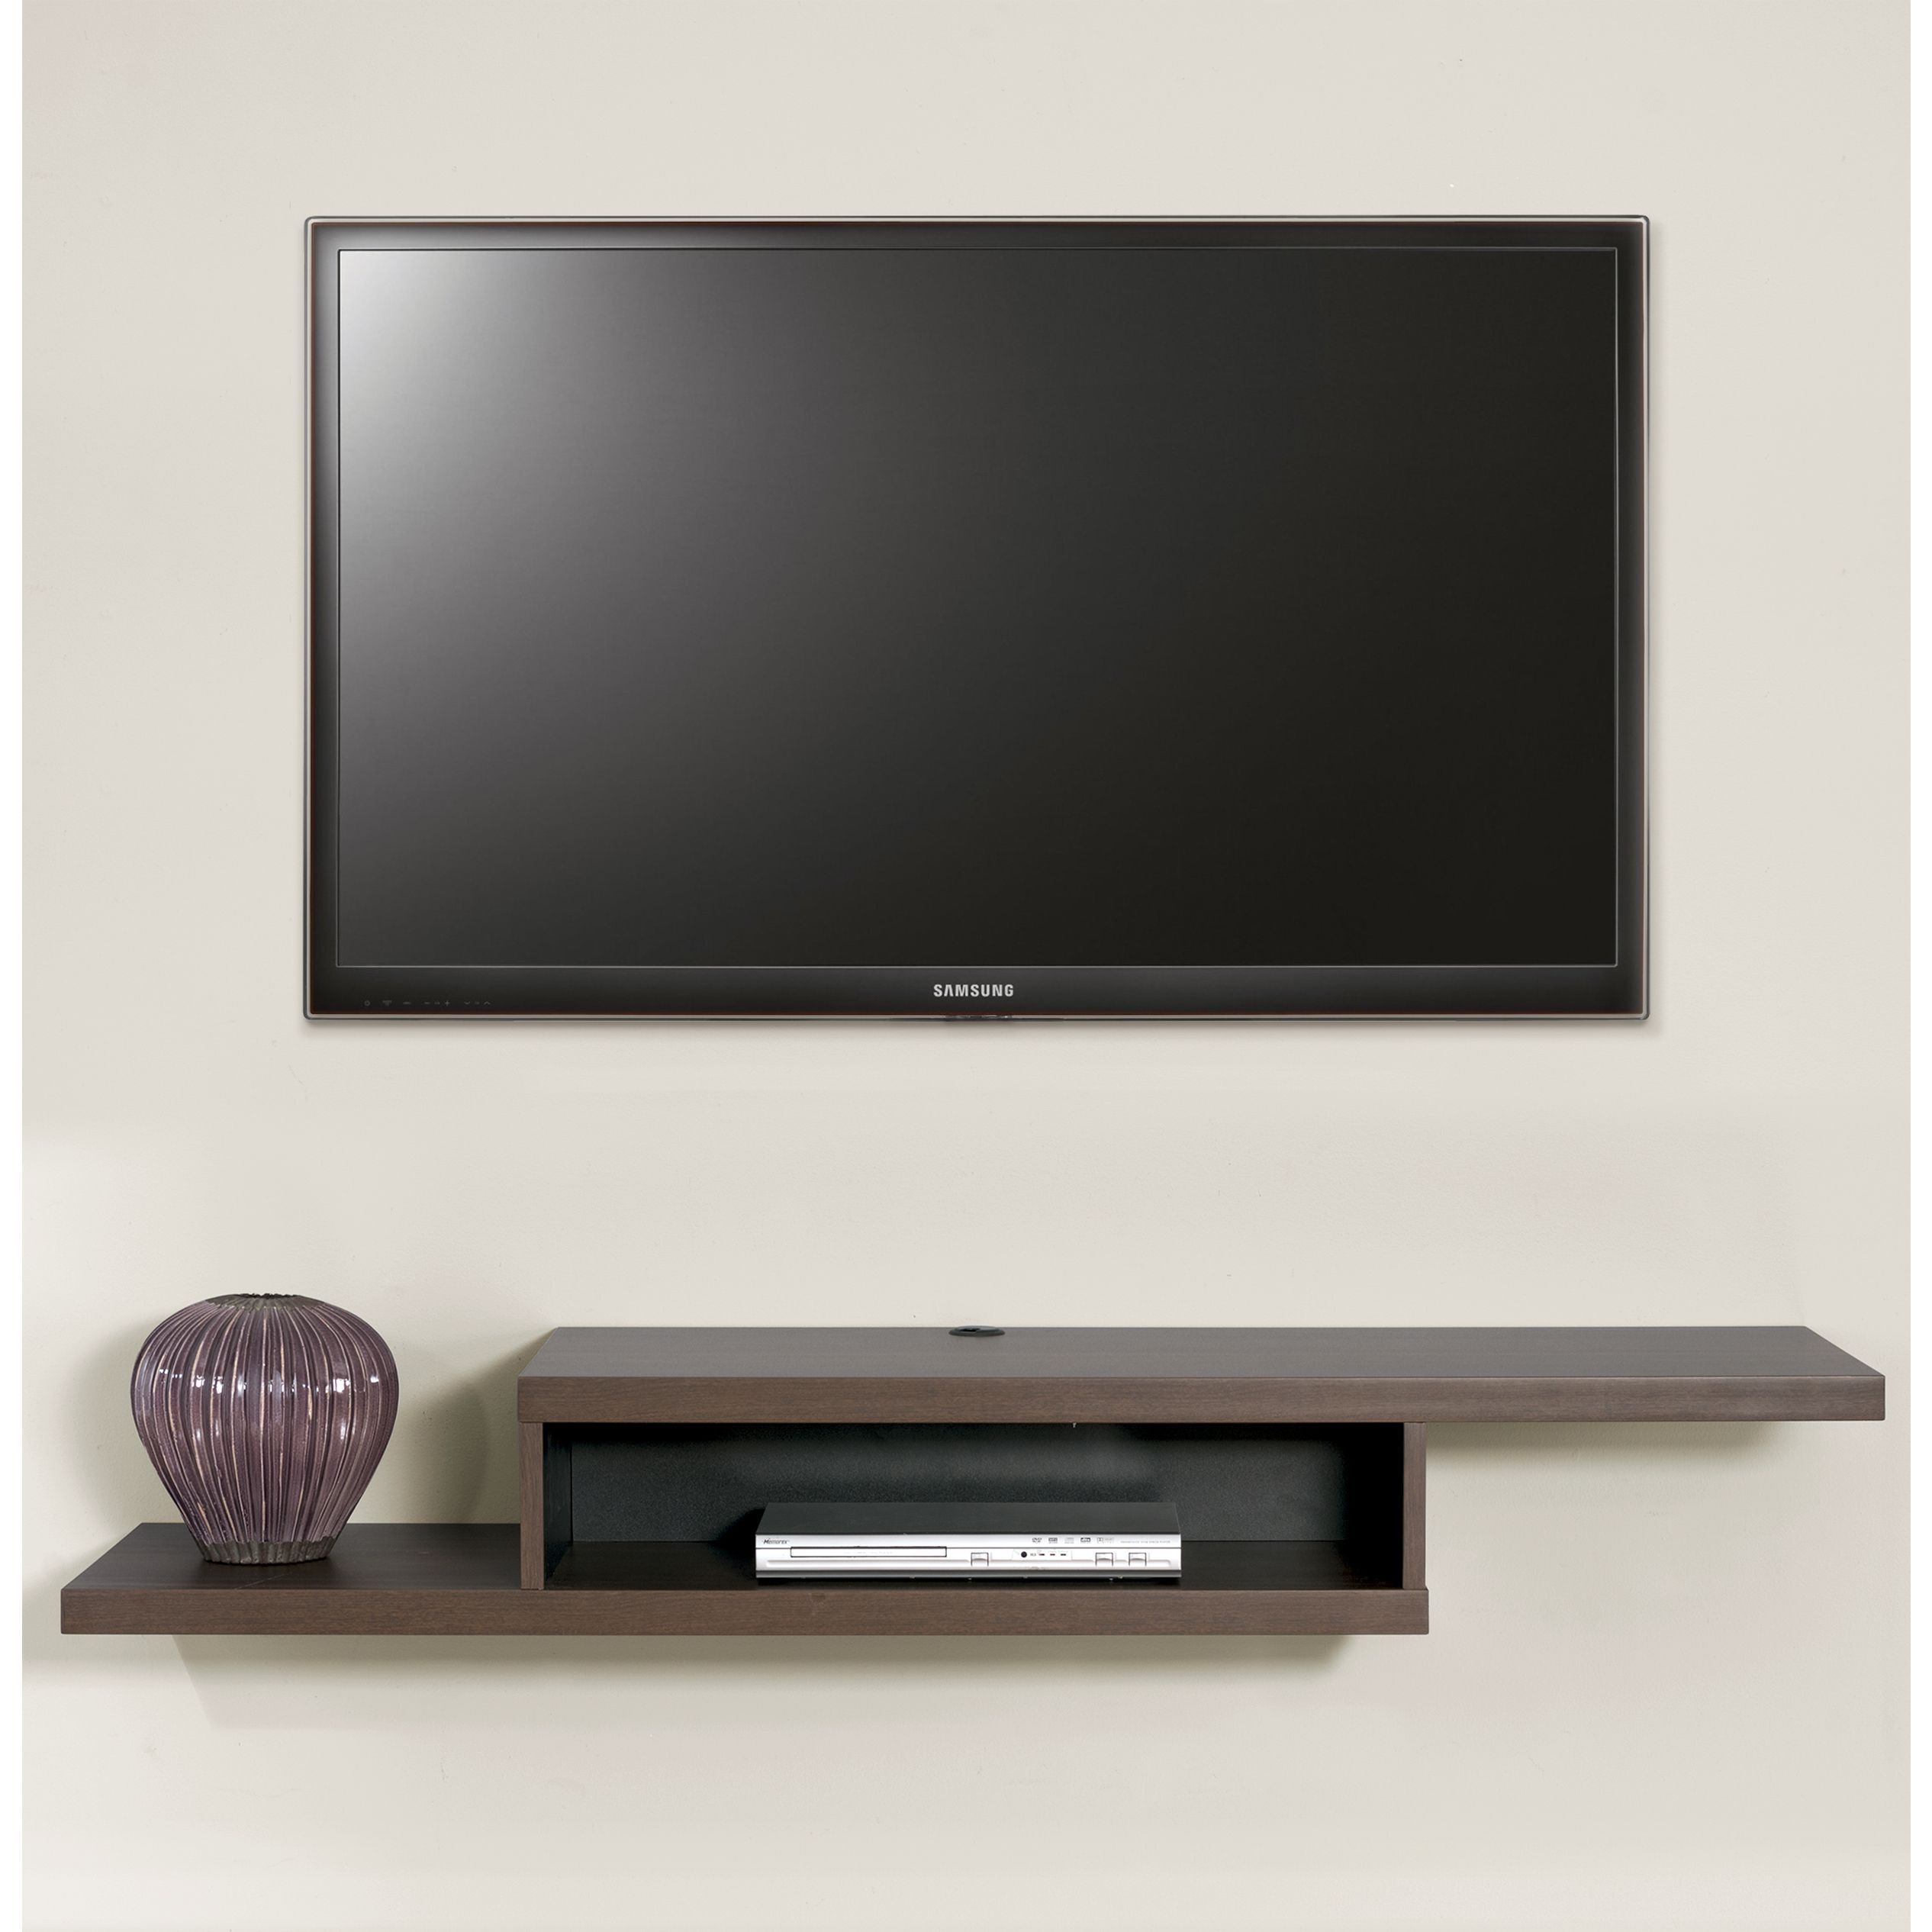 Wall Mounted Tv Console Ideas This Wall Mounted Tv Console Has A Modern Flair With The